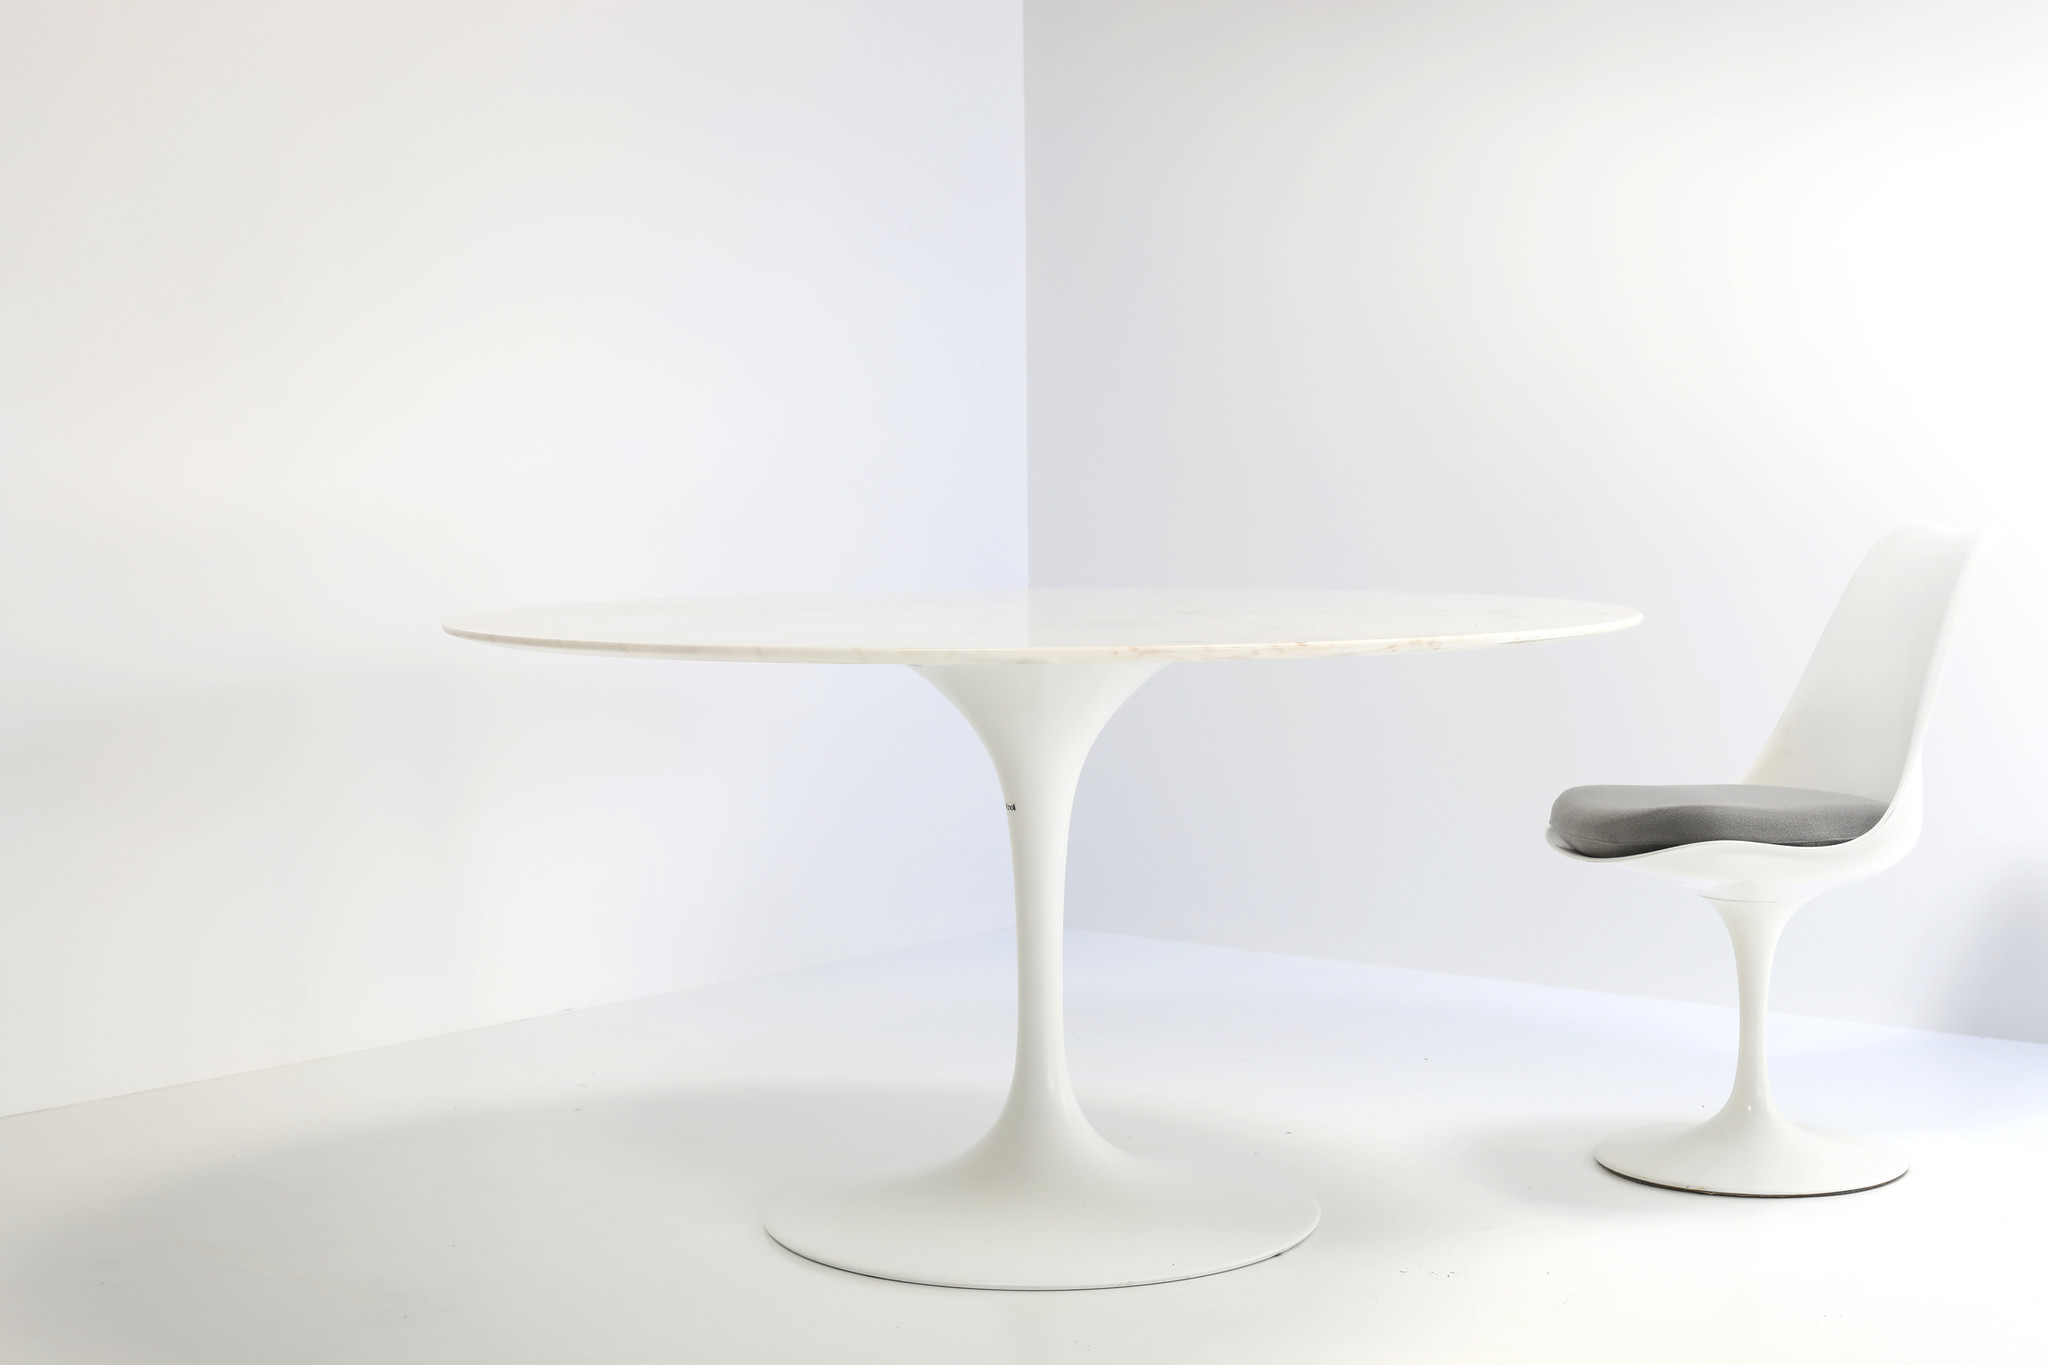 Tulip table designed by Eero Saarinen for Knoll, 1957